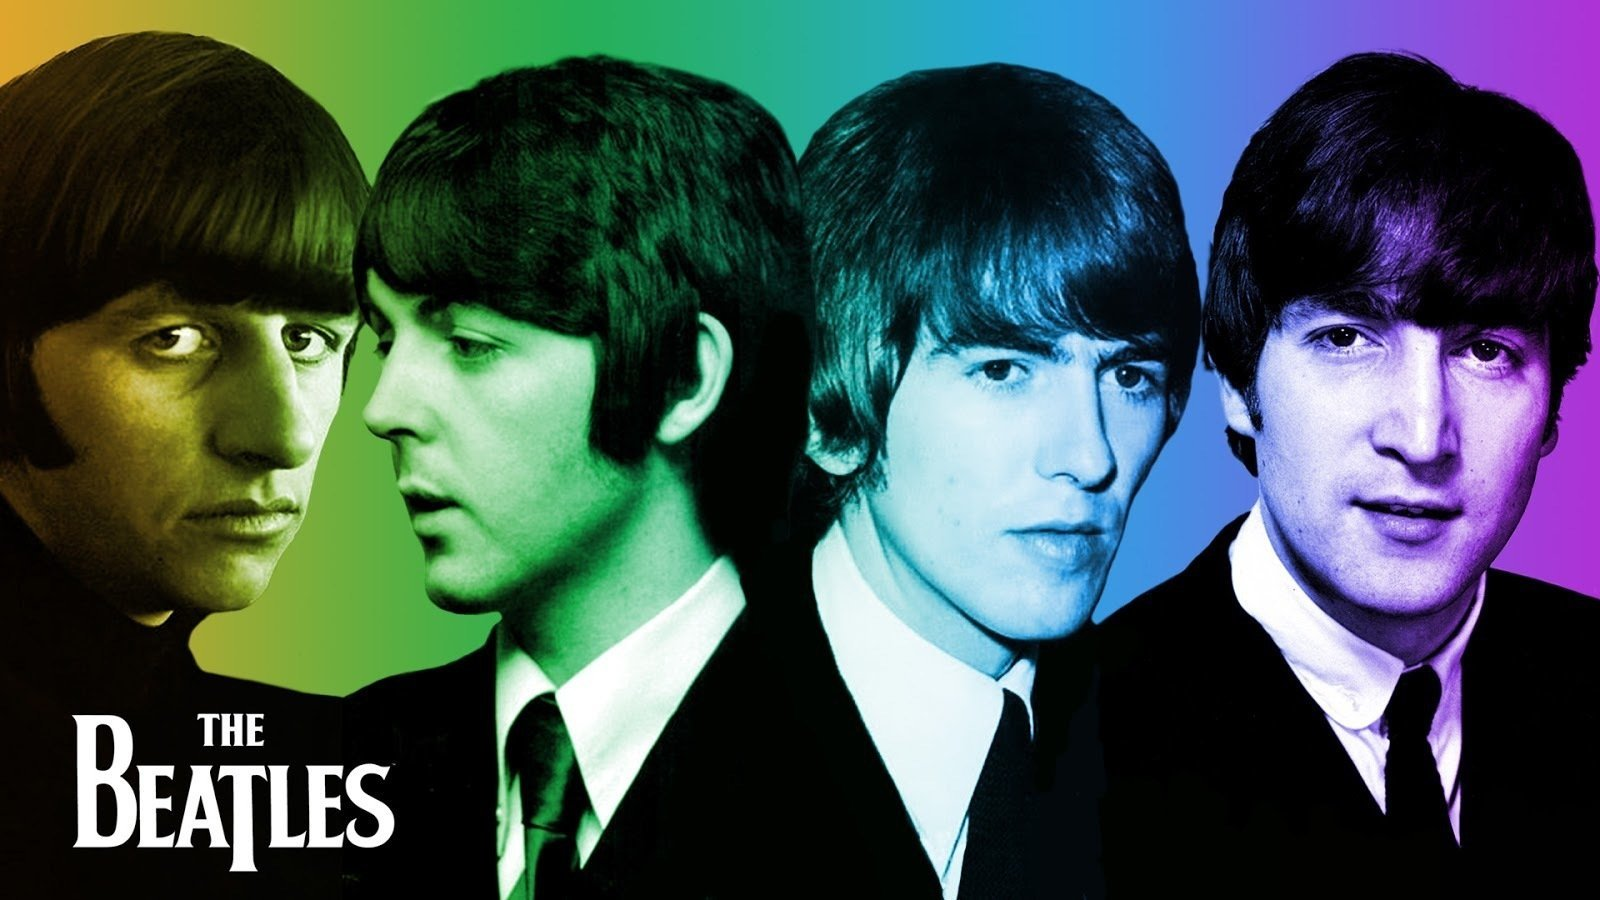 The Beatles Wallpaper and Background Image   1600x900   ID ...